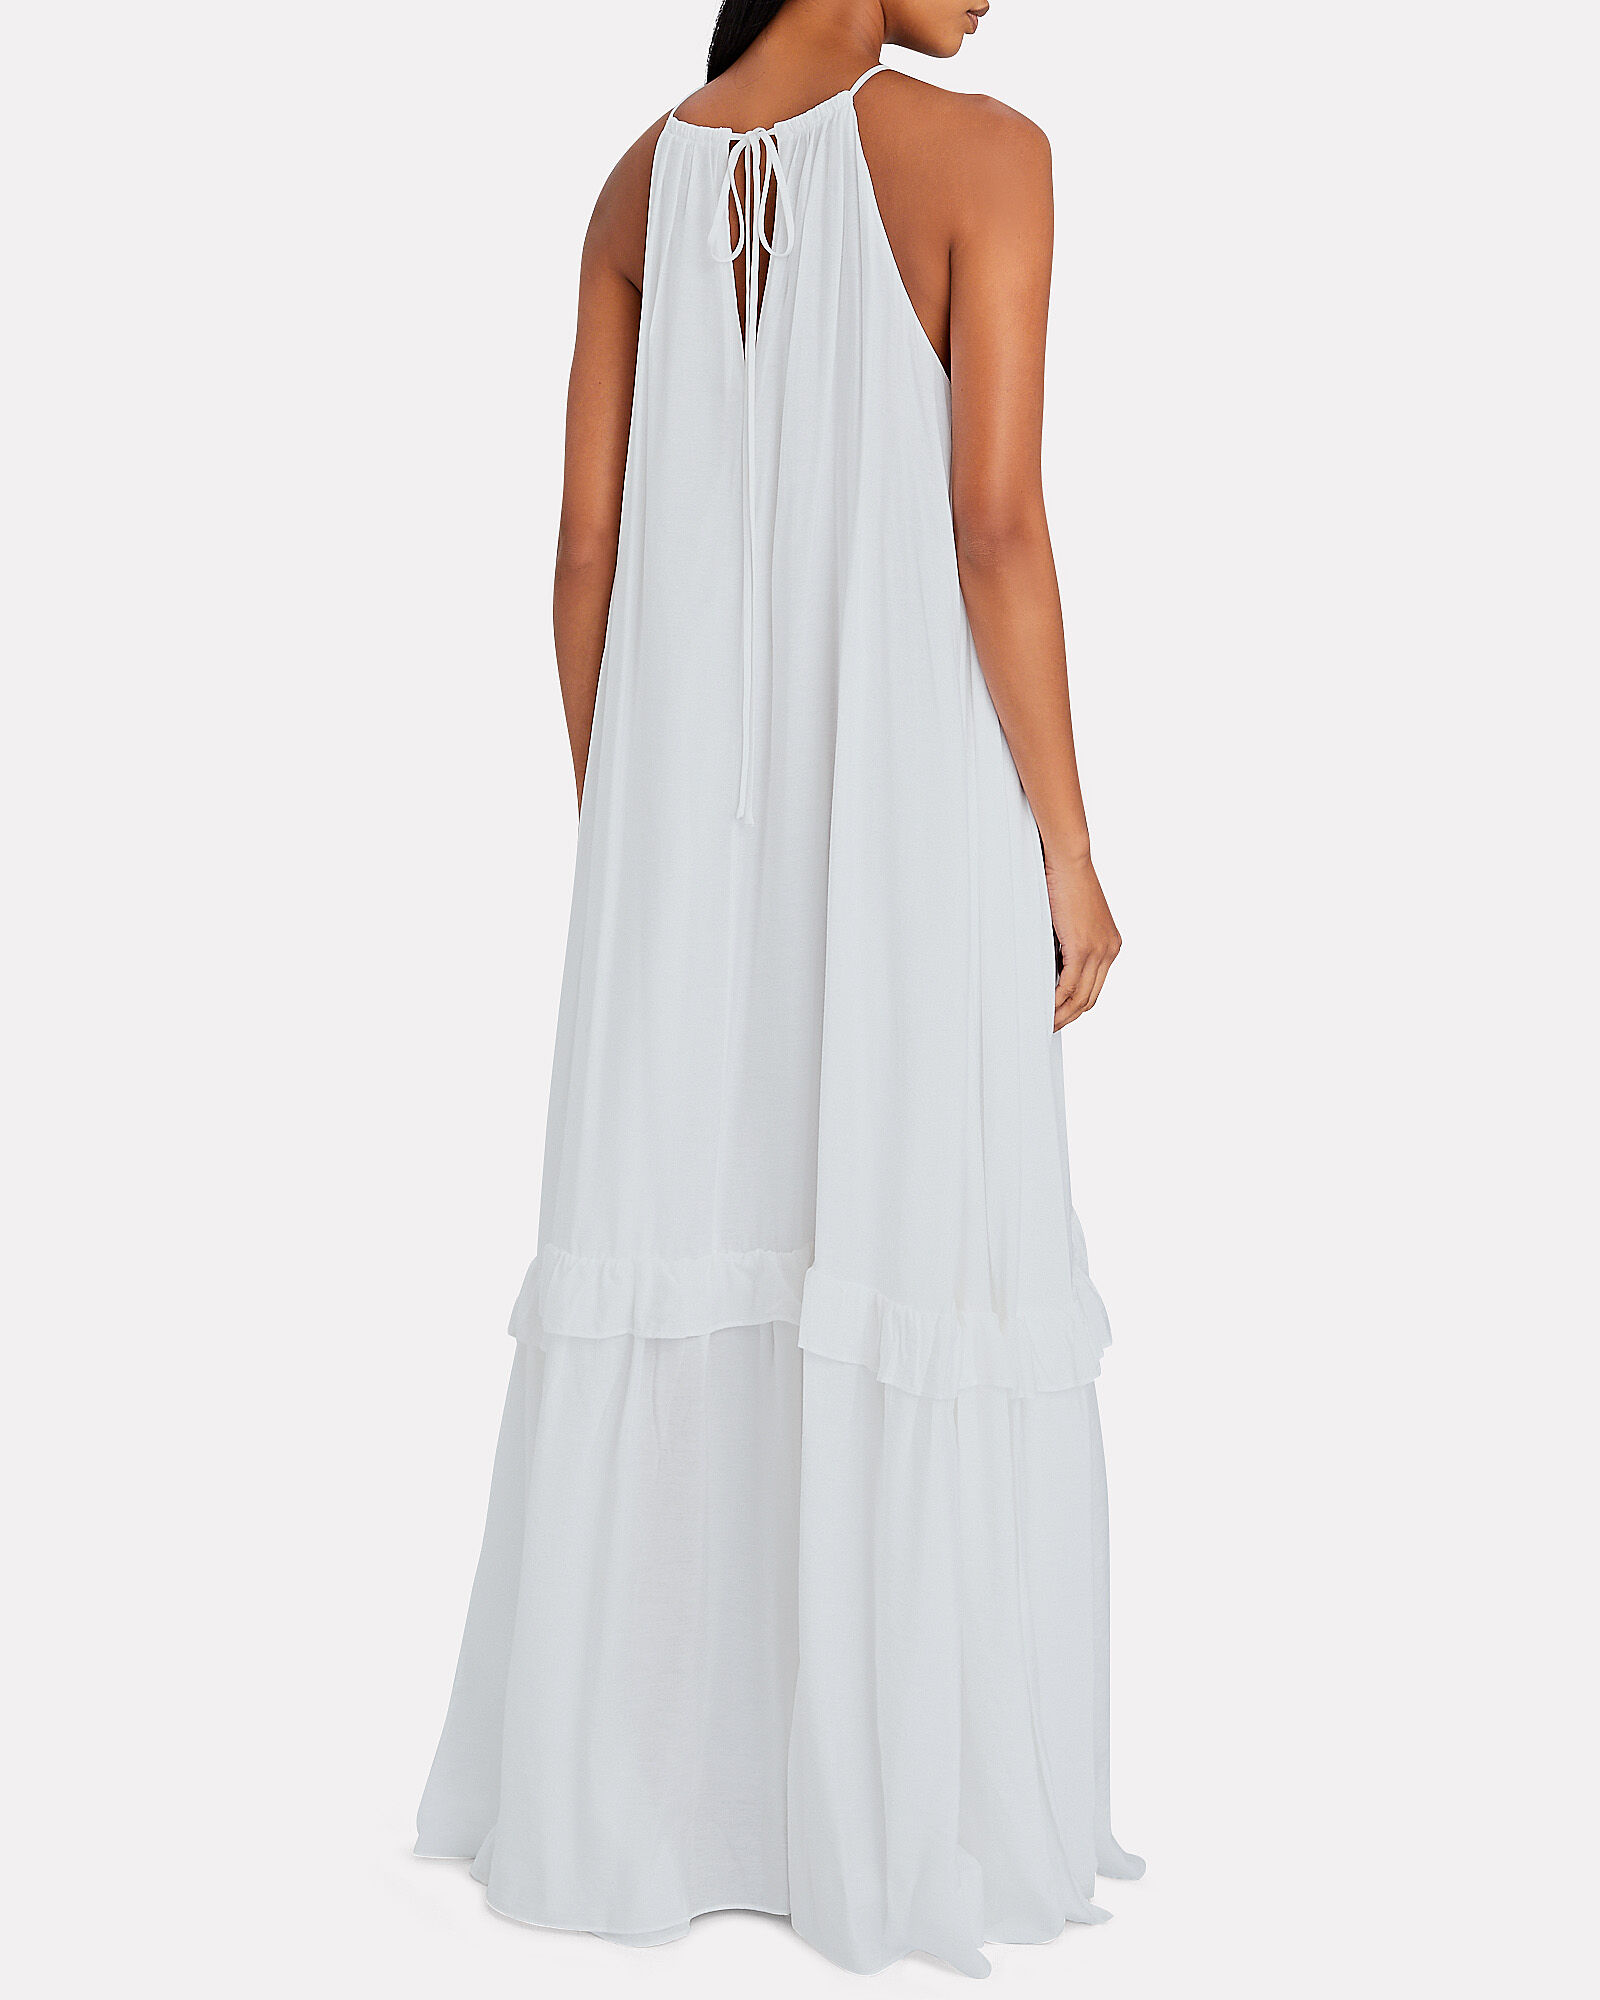 Ina Sleeveless Maxi Dress, WHITE, hi-res